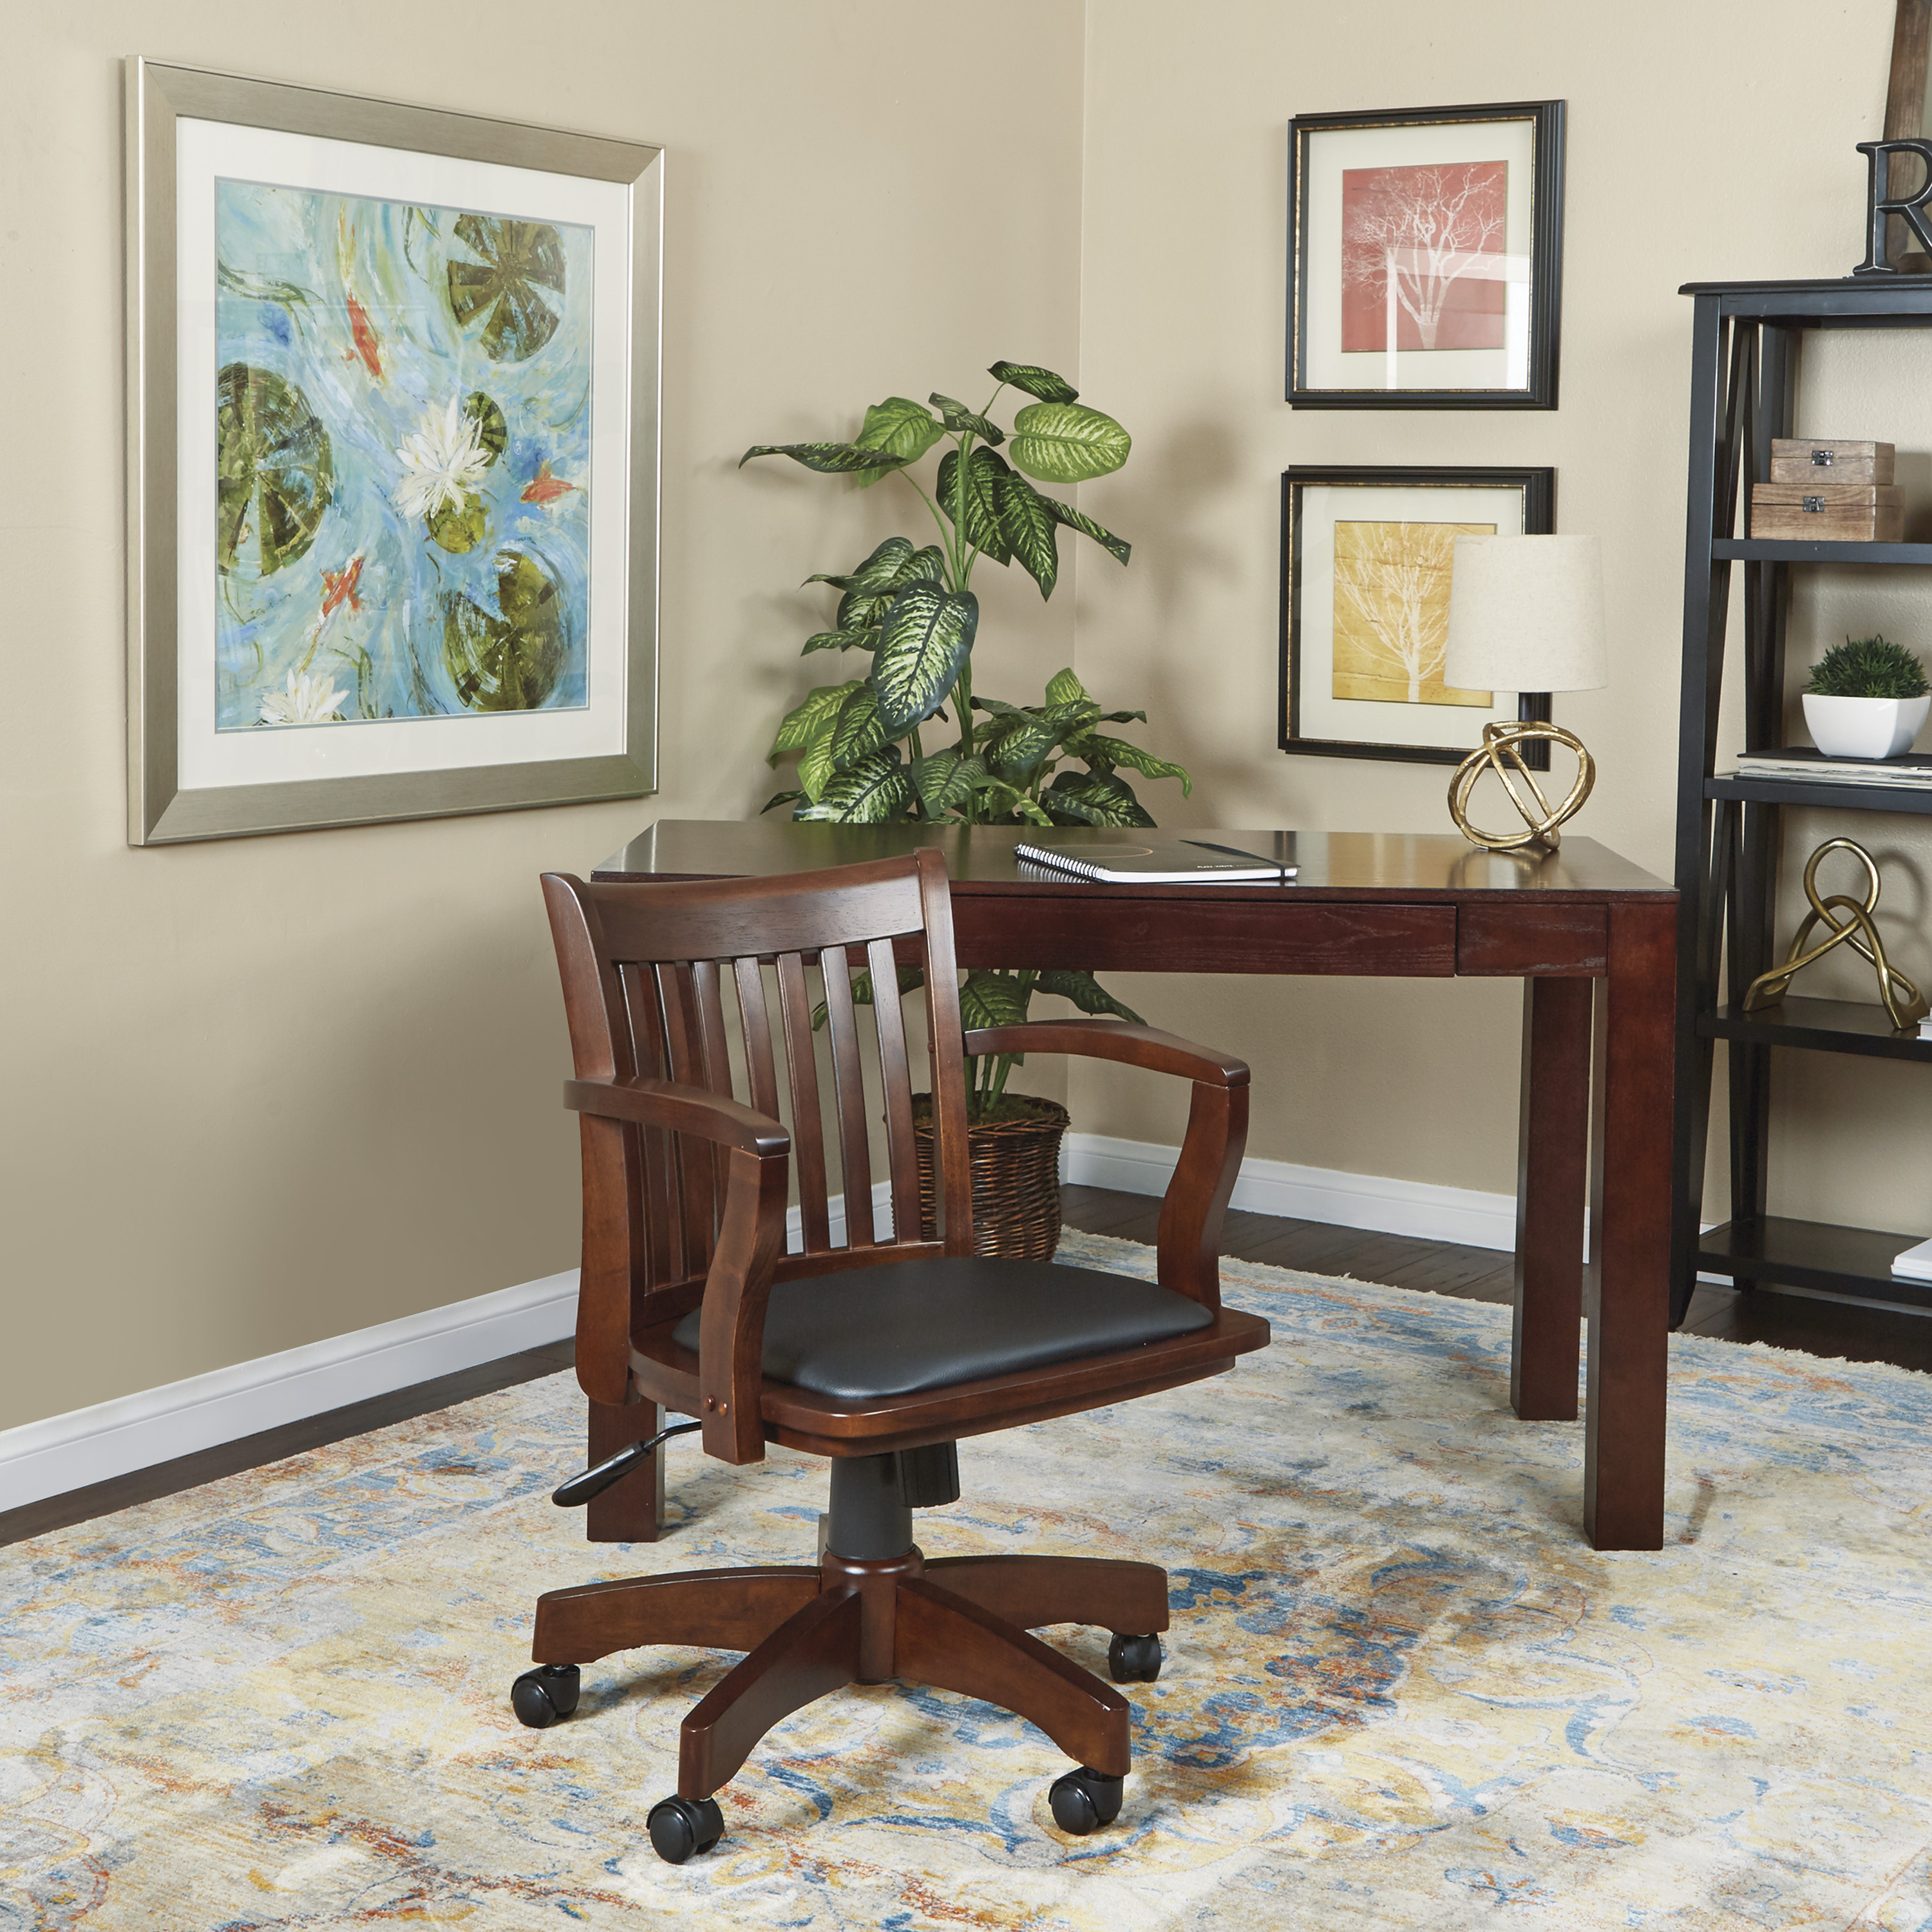 Deluxe Wood Bankers Chair With Vinyl Padded Seat, Espresso And Black Vinyl  Fabric